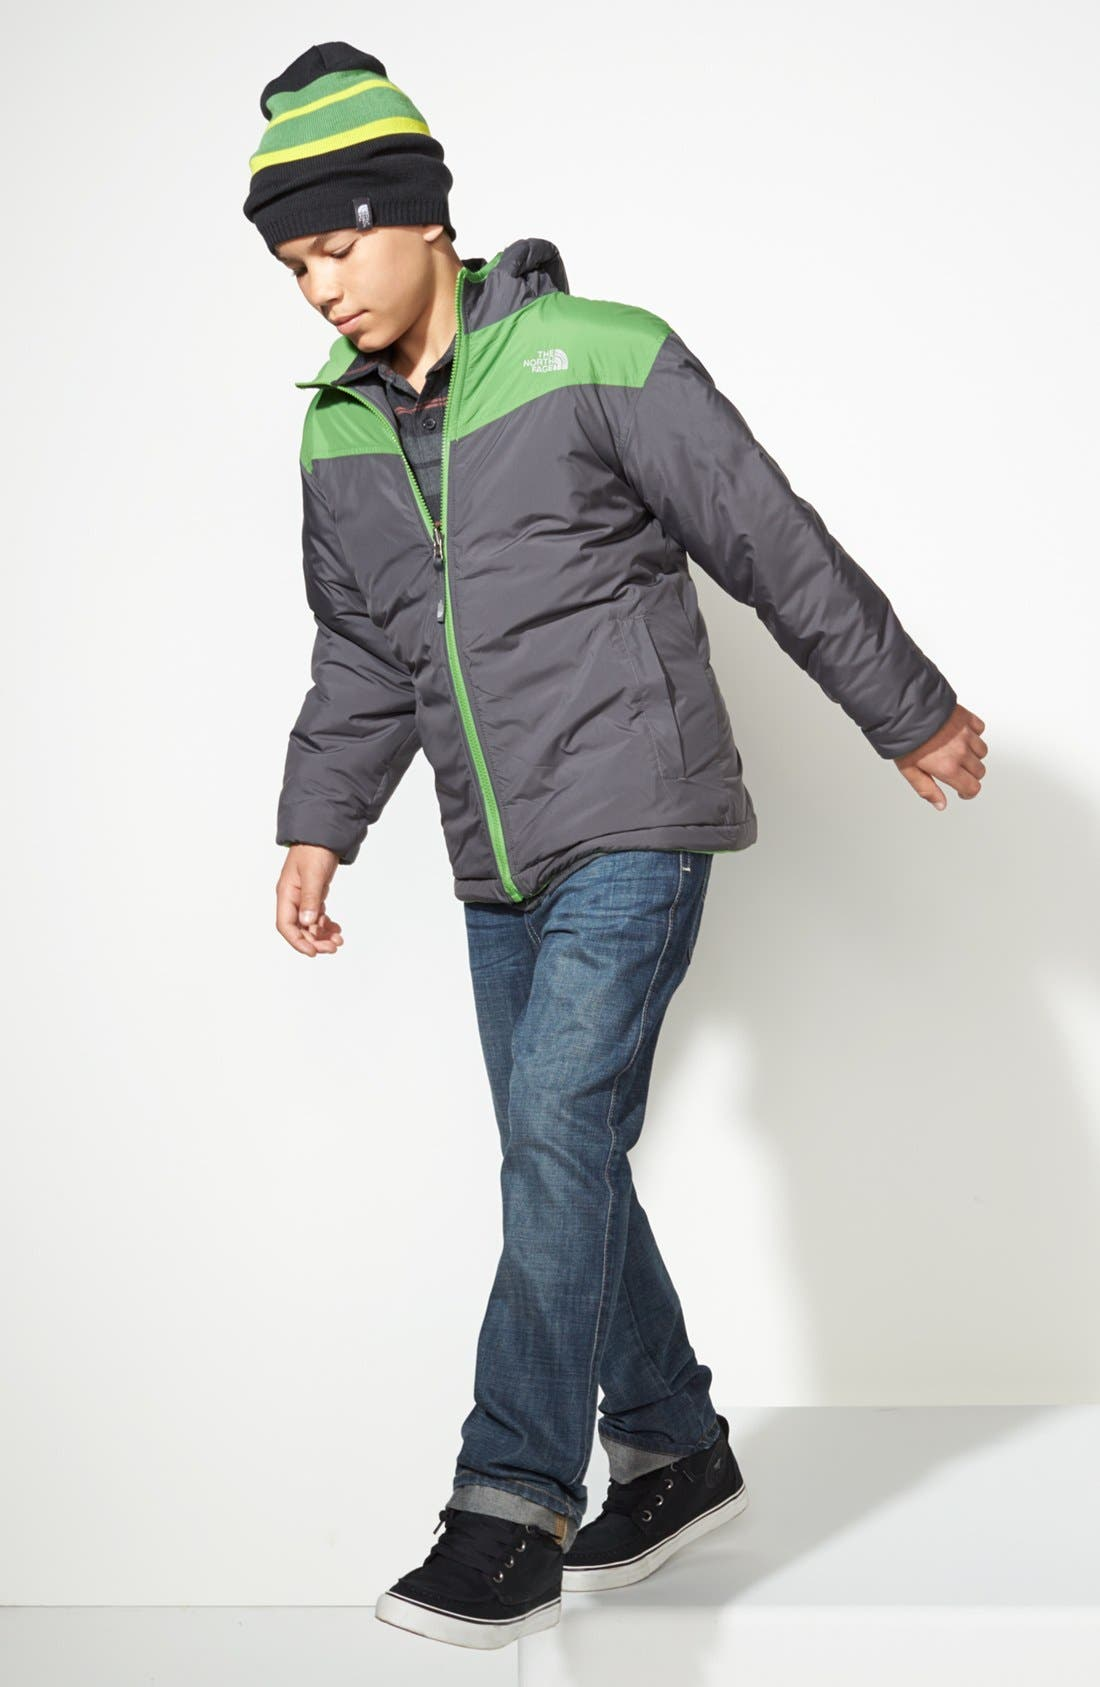 Alternate Image 1 Selected - The North Face Jacket, Quiksilver Sport Shirt & Tucker + Tate Jeans (Big Boys)